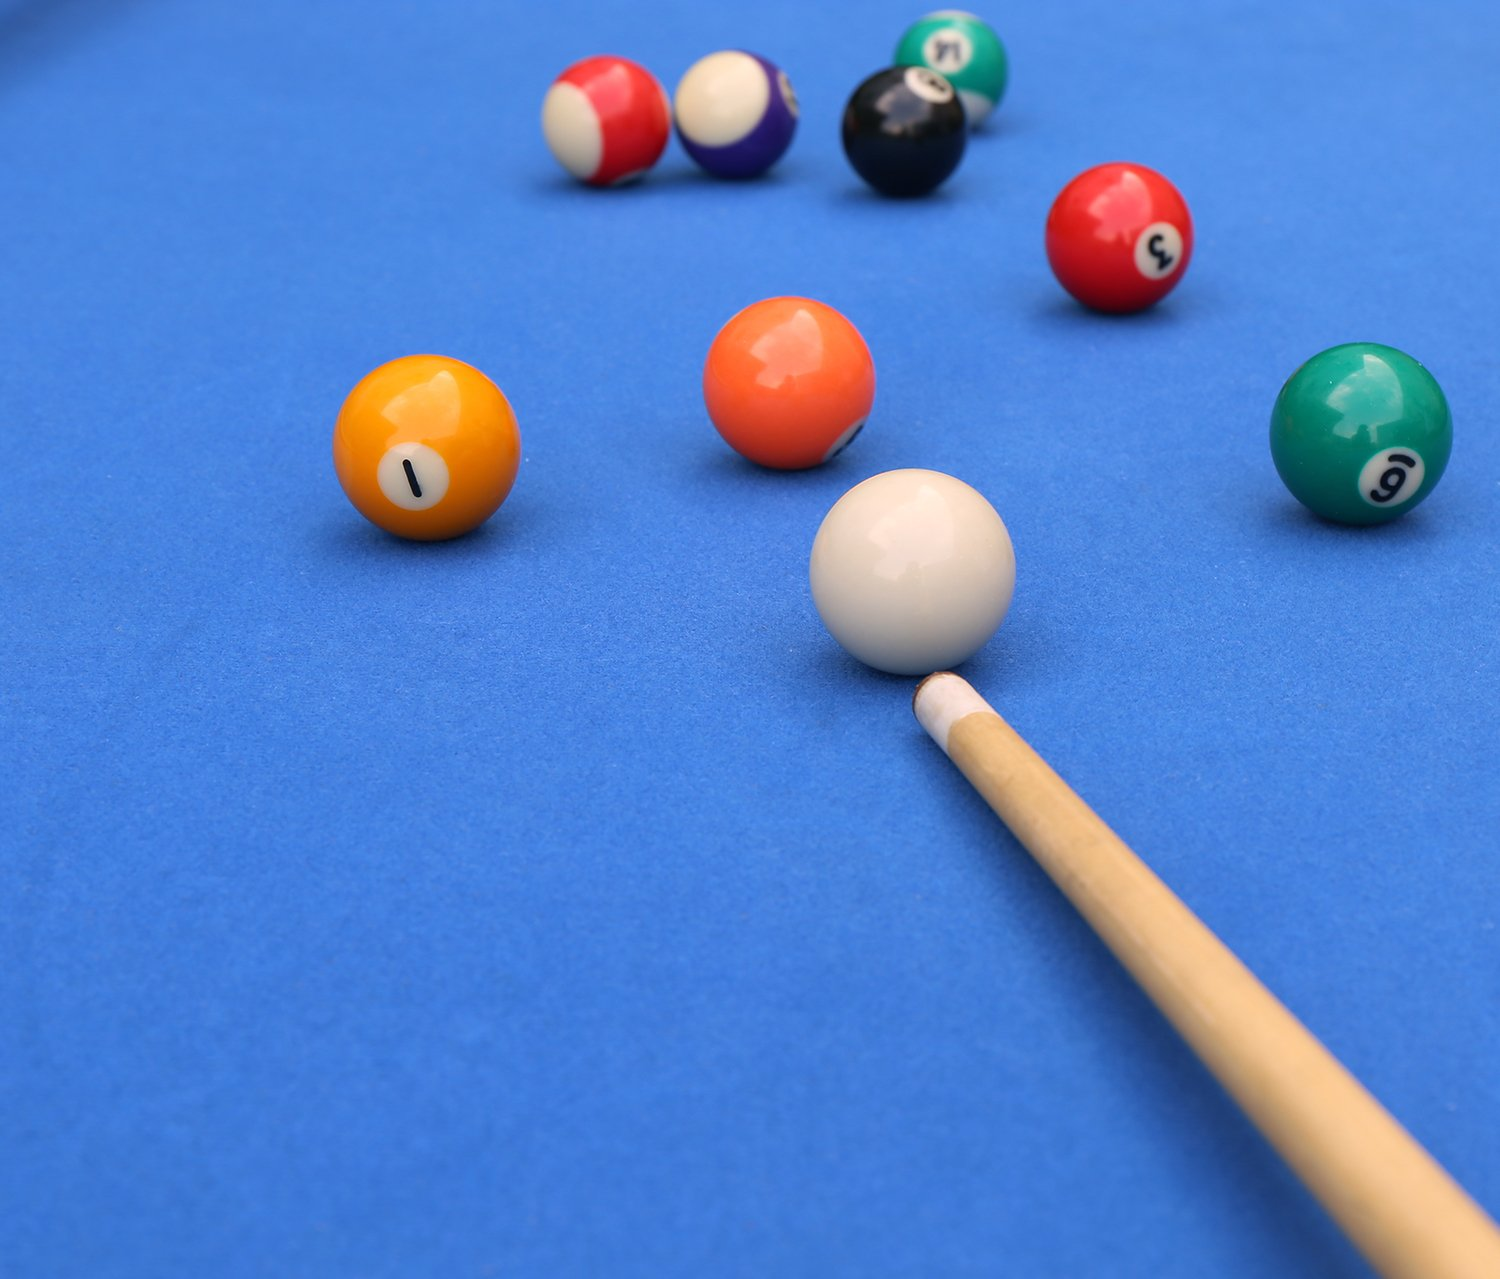 pool table shape photos image triangular photo balls stock motion billiard